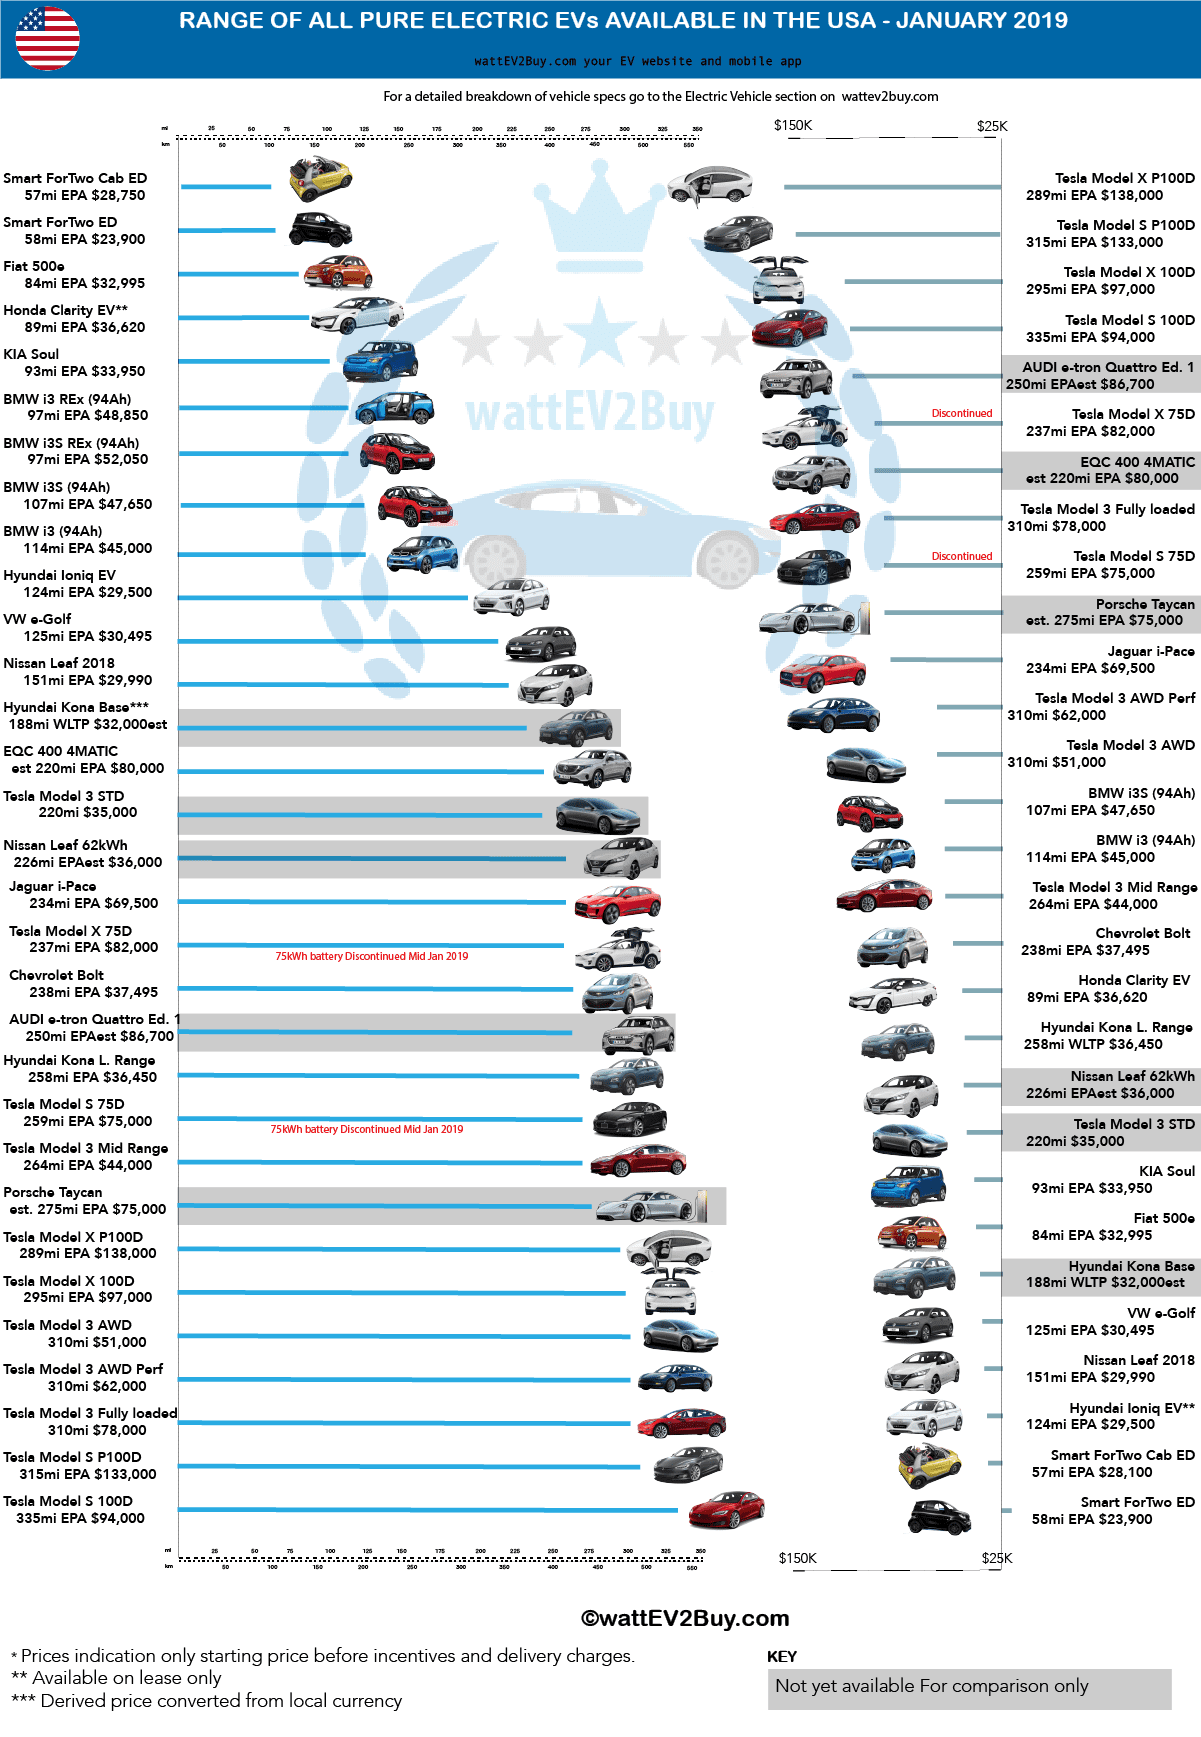 USA-EV-price-list-ranked-by-price-and-range